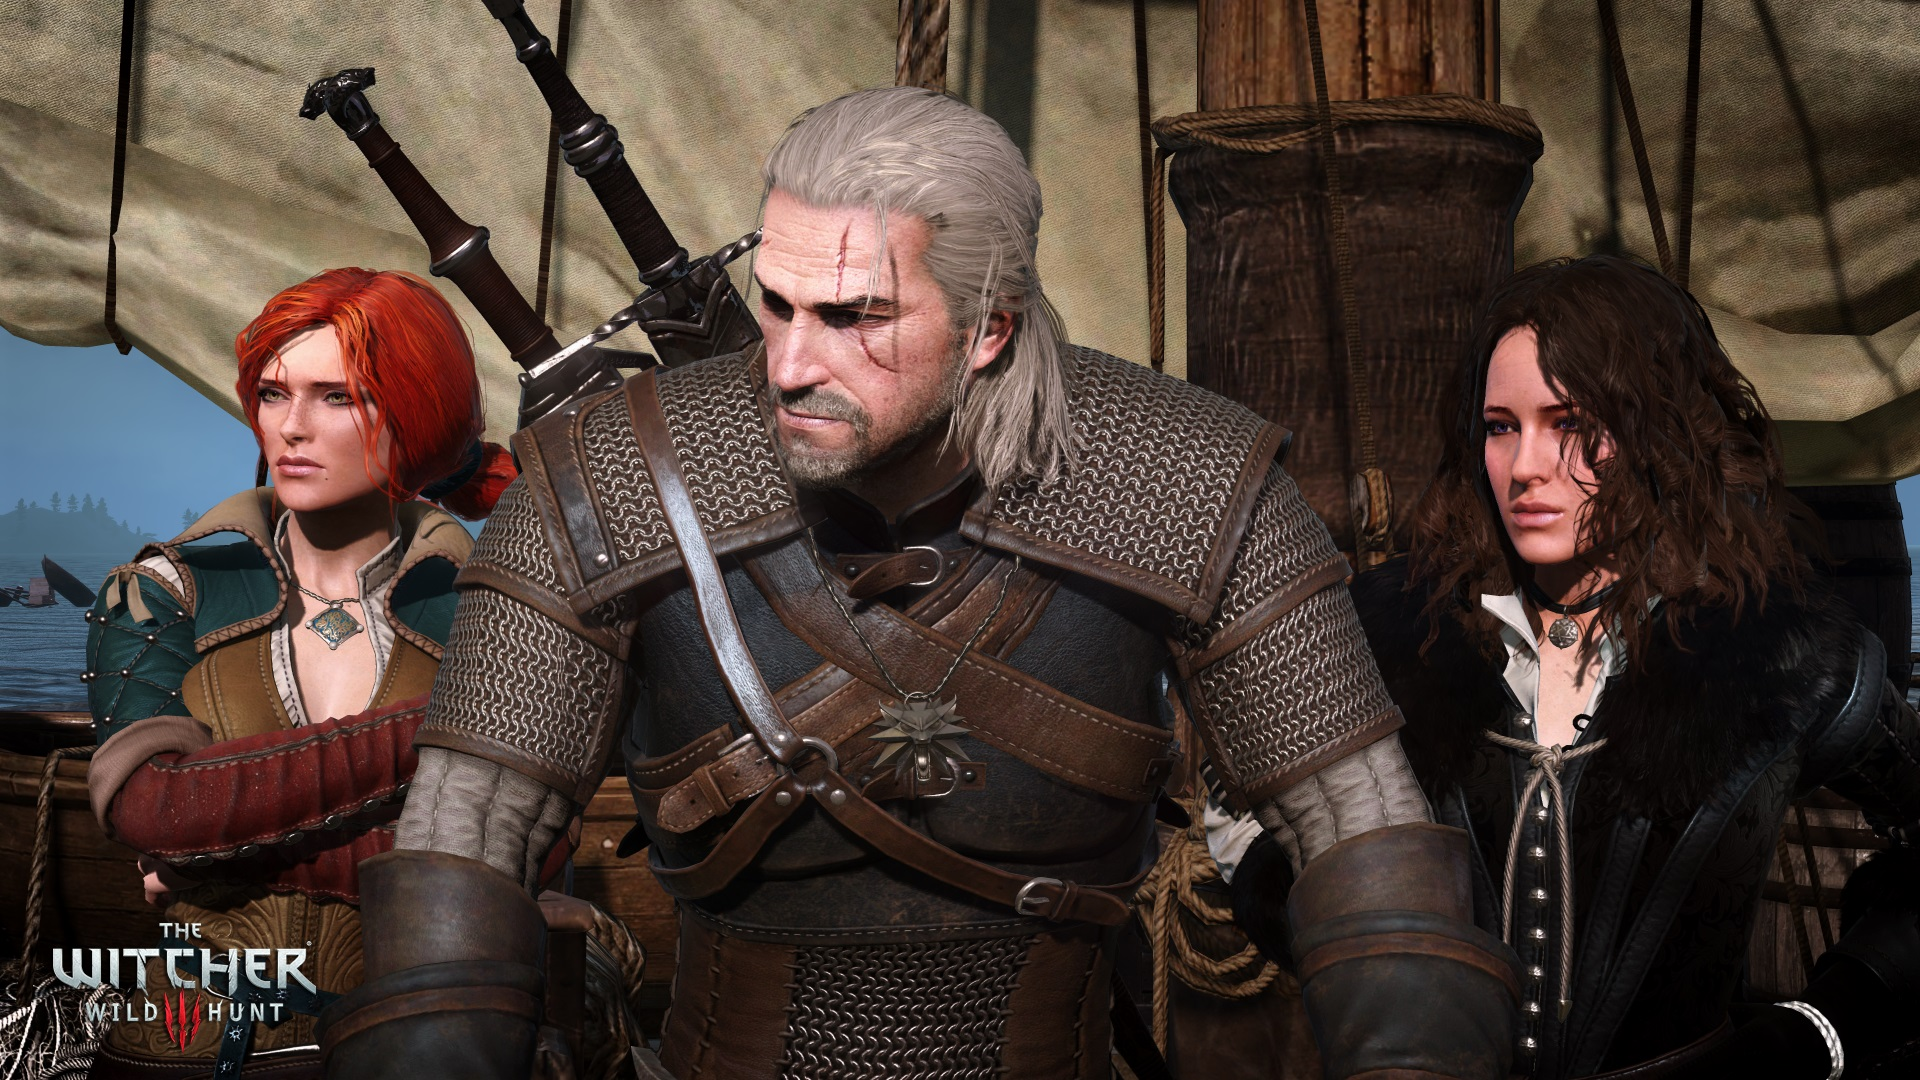 Witcher 3 mod lets you play as Triss, Yennifer, Ciri, or